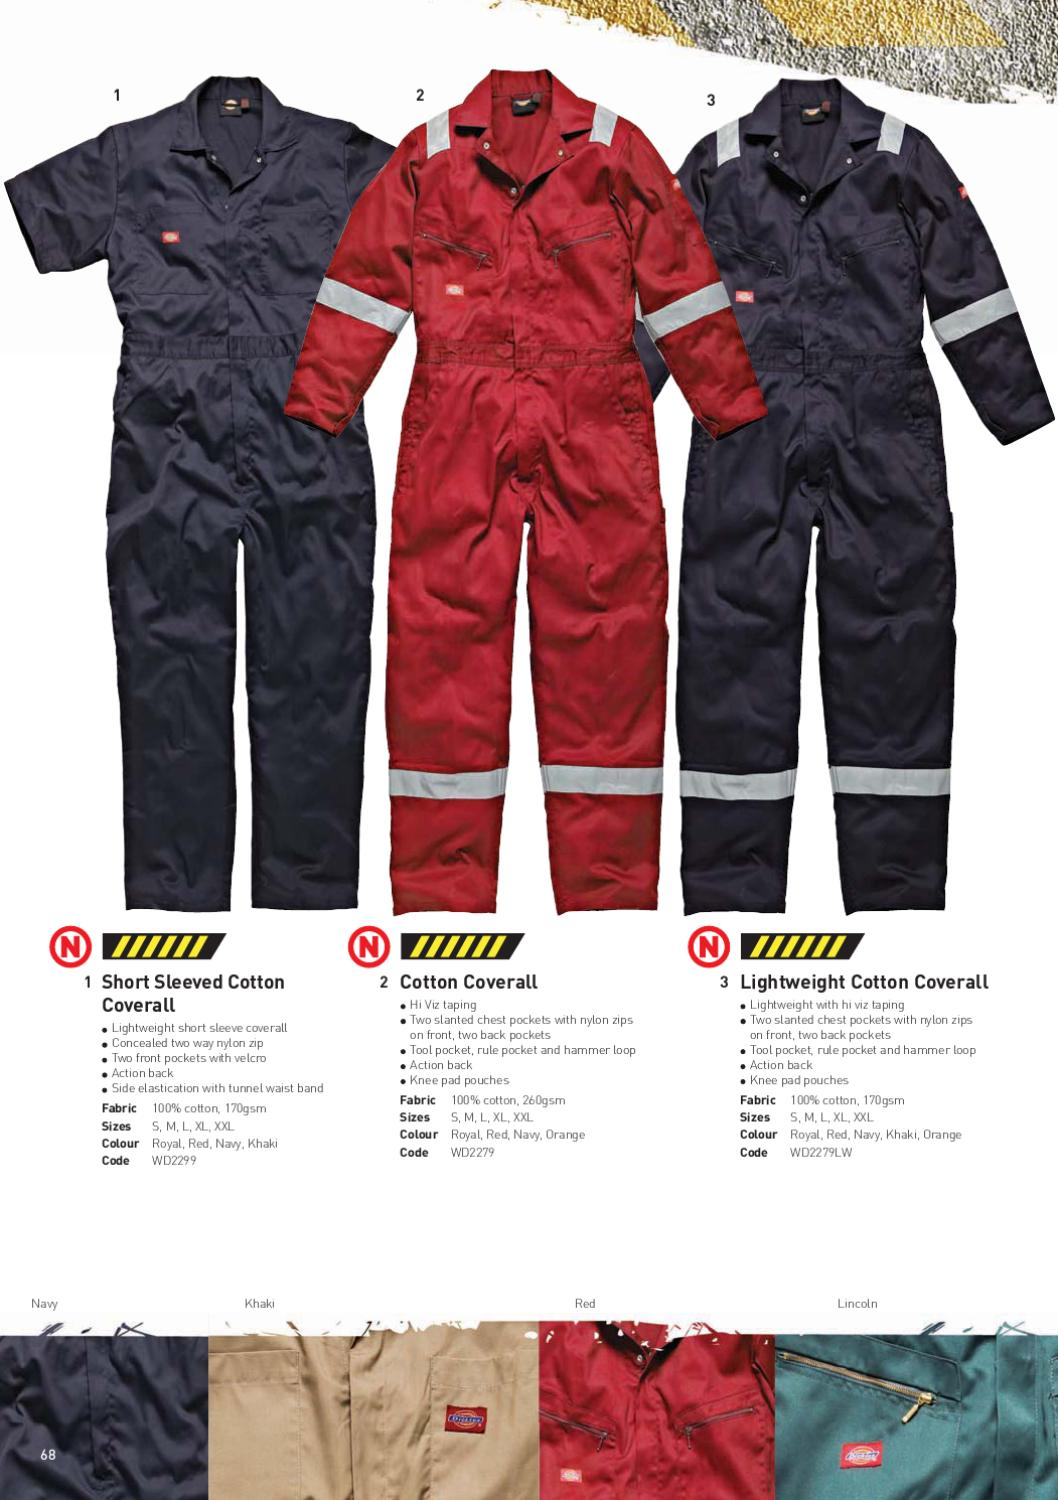 Xl Dickies Wd2299 S//Sleeve Cotton Coverall Navy